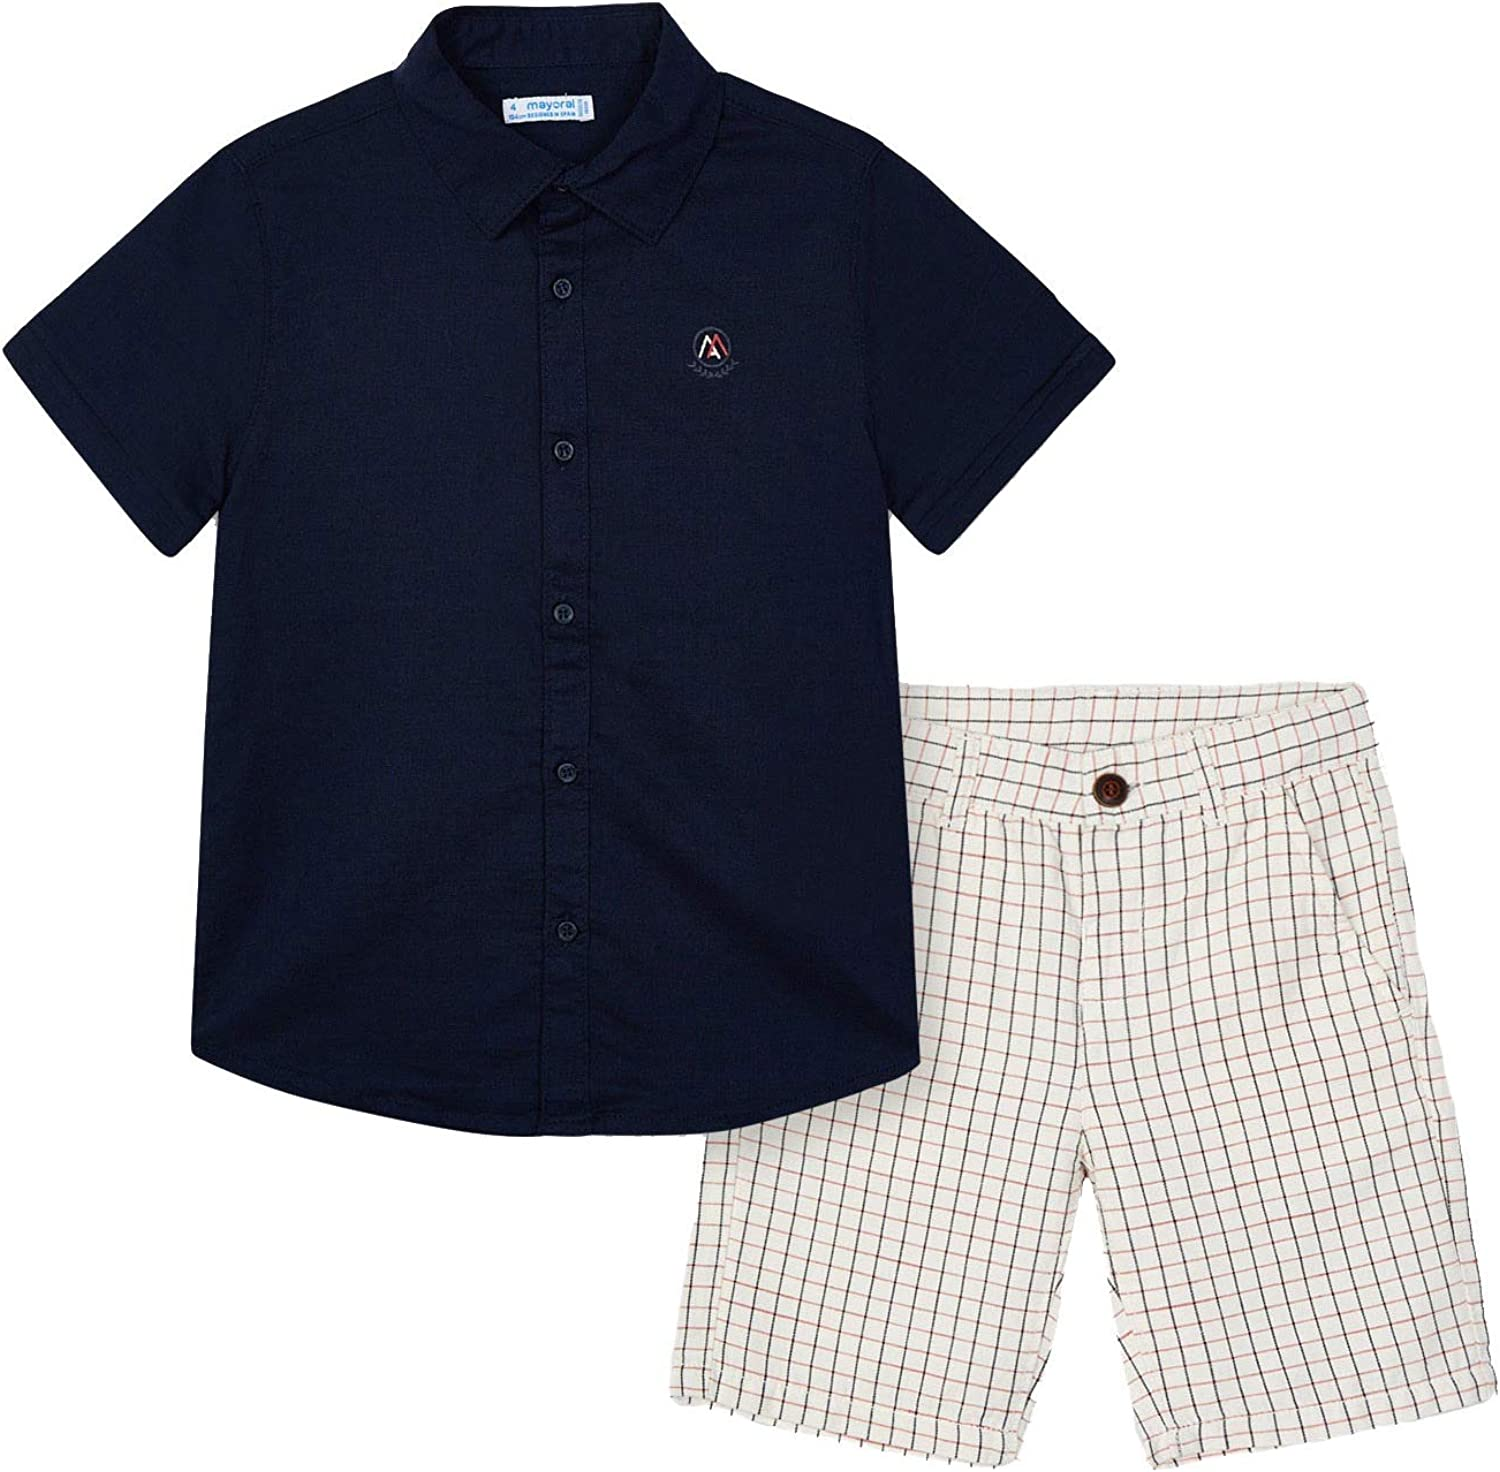 Mayoral - Linen Shirt and Short Set for Boys - 3244, whiteboard